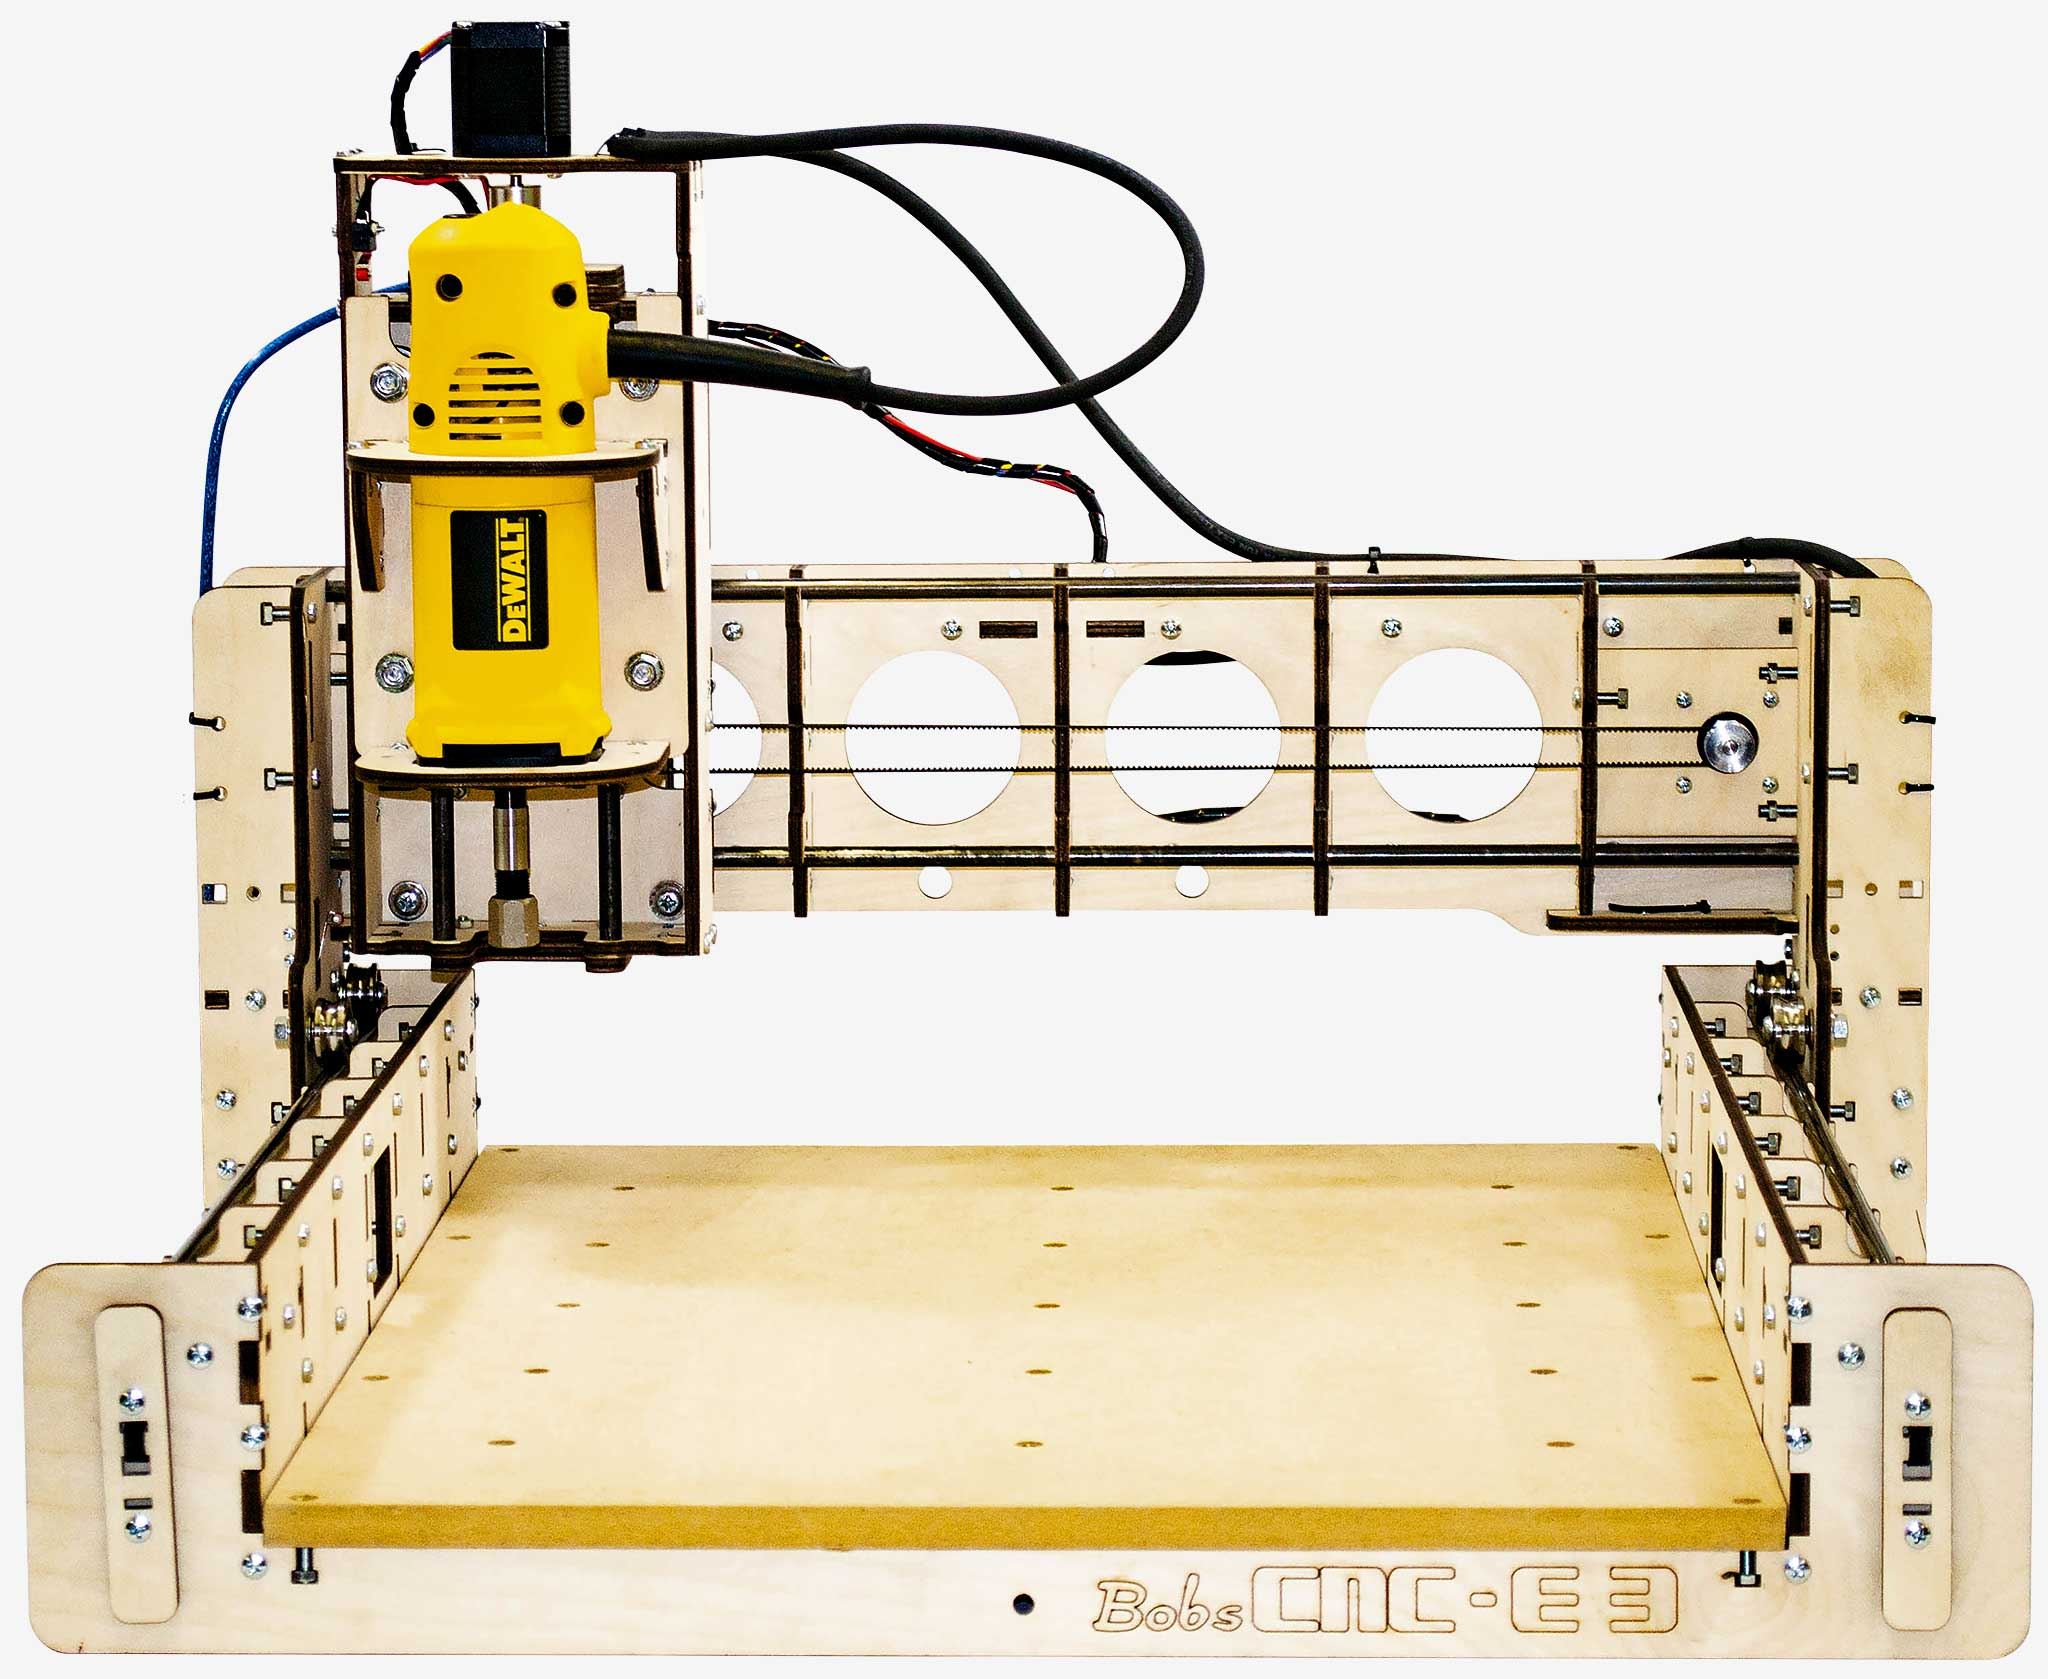 small resolution of e3 cnc router kit bobscnc wood router wiring diagram